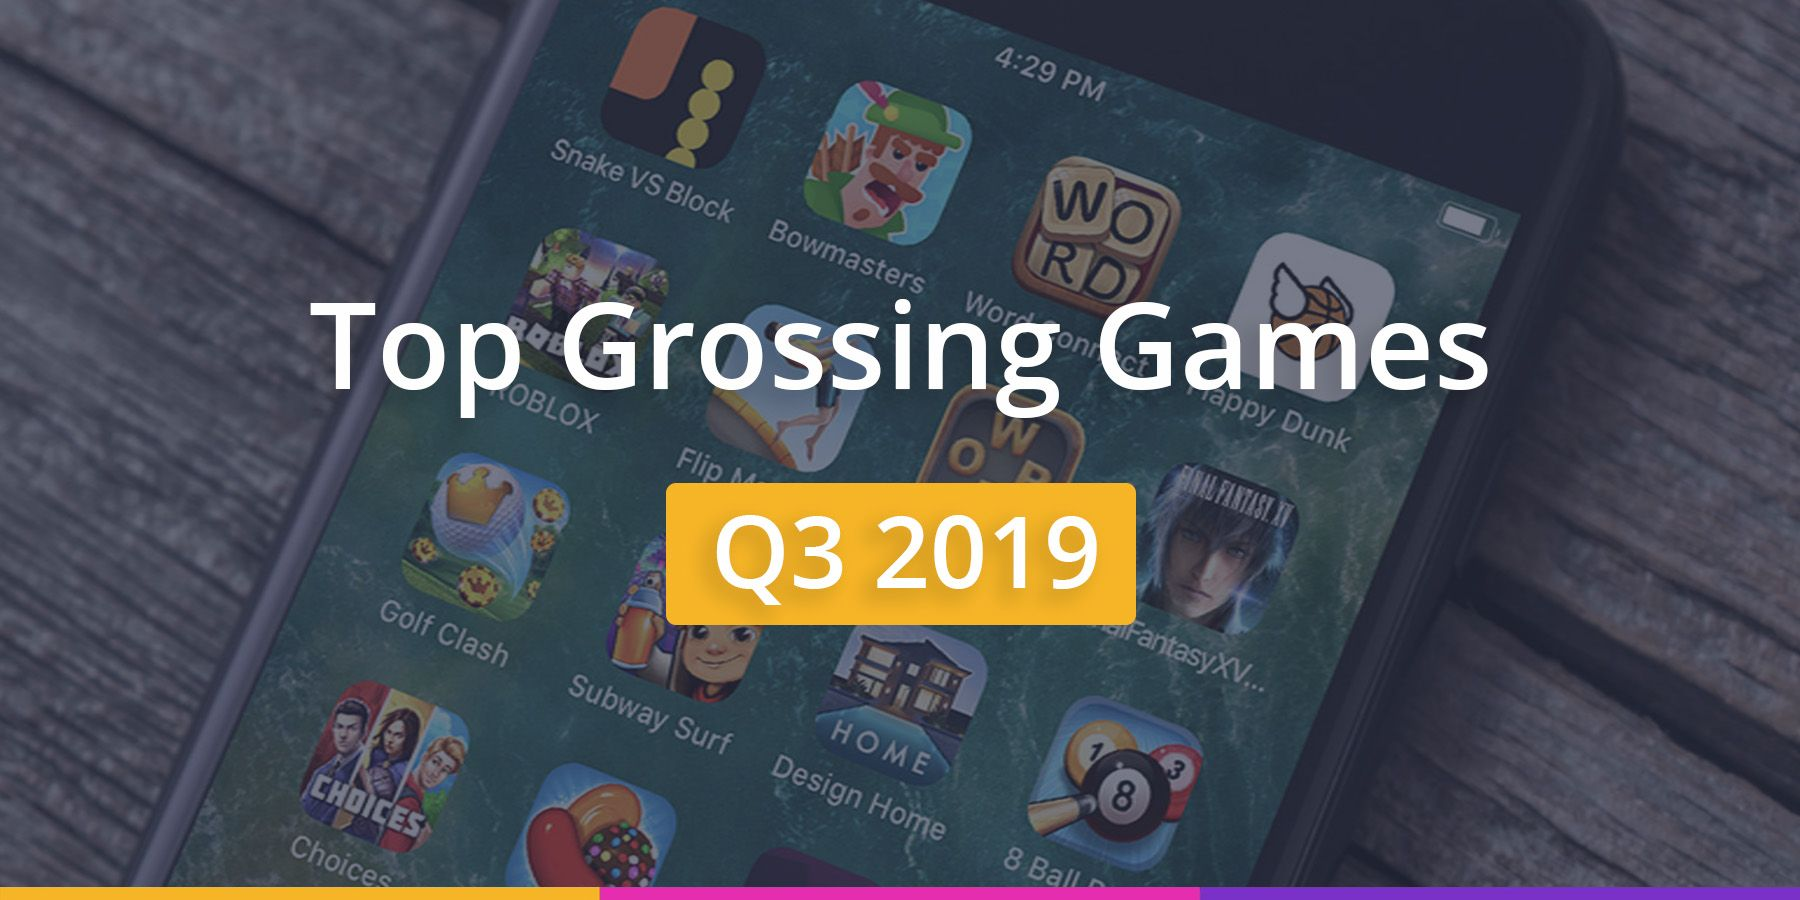 Top Grossing Mobile Games for Q3 2019